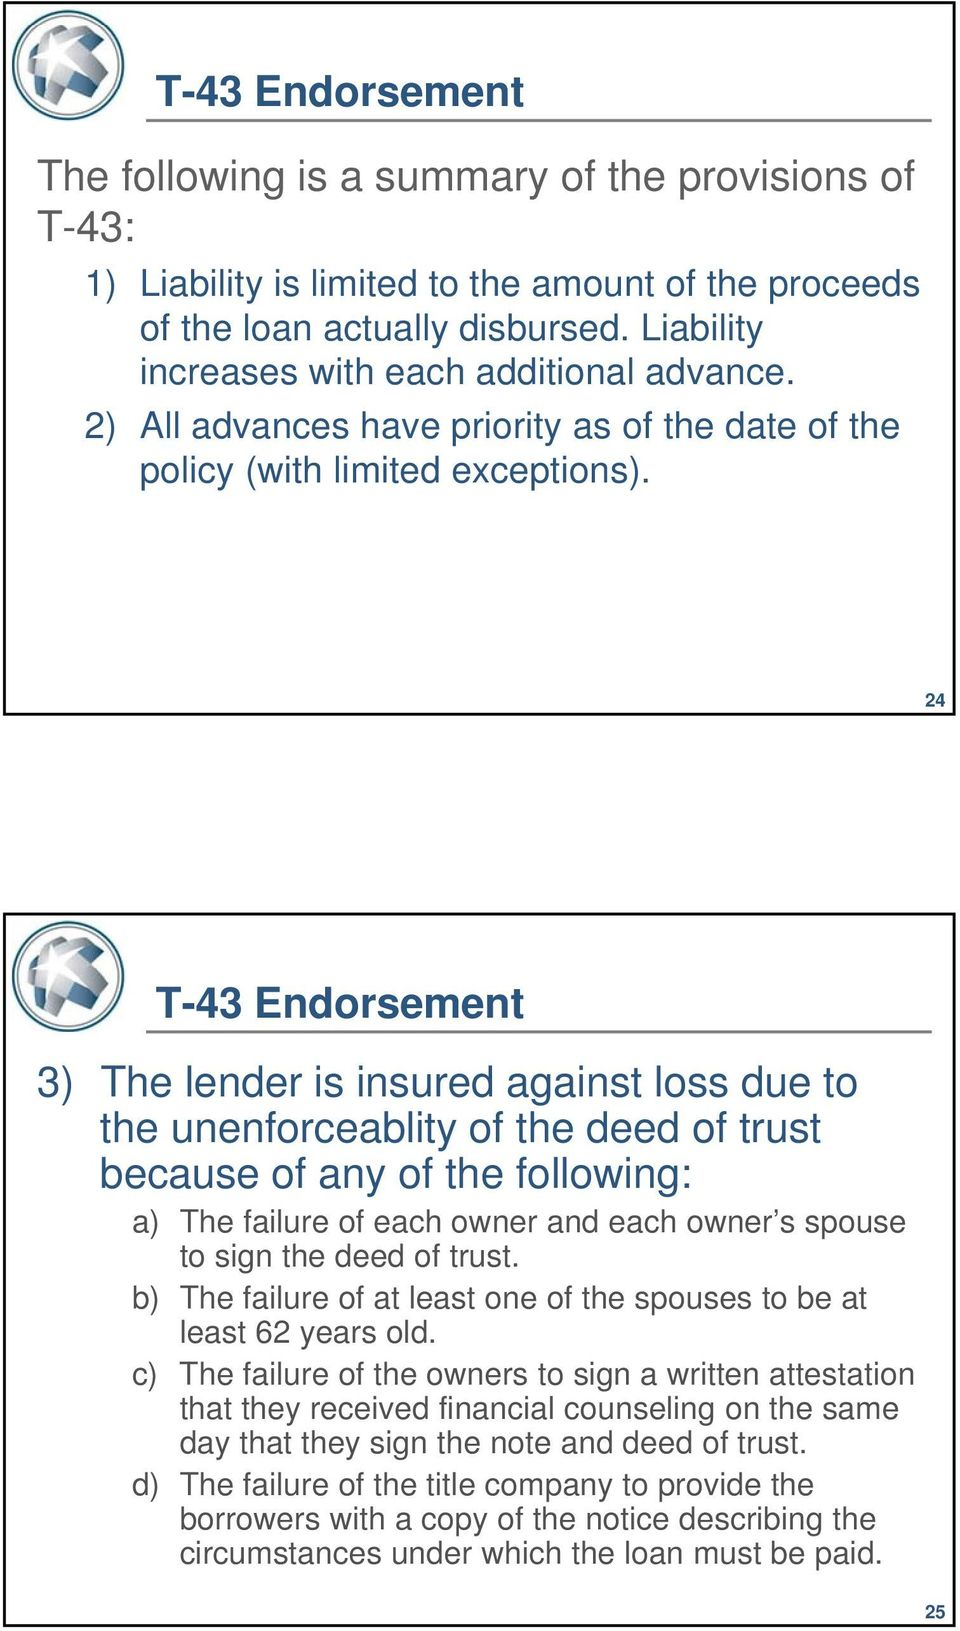 24 T-43 Endorsement 3) The lender is insured against loss due to the unenforceablity of the deed of trust because of any of the following: a) The failure of each owner and each owner s spouse to sign